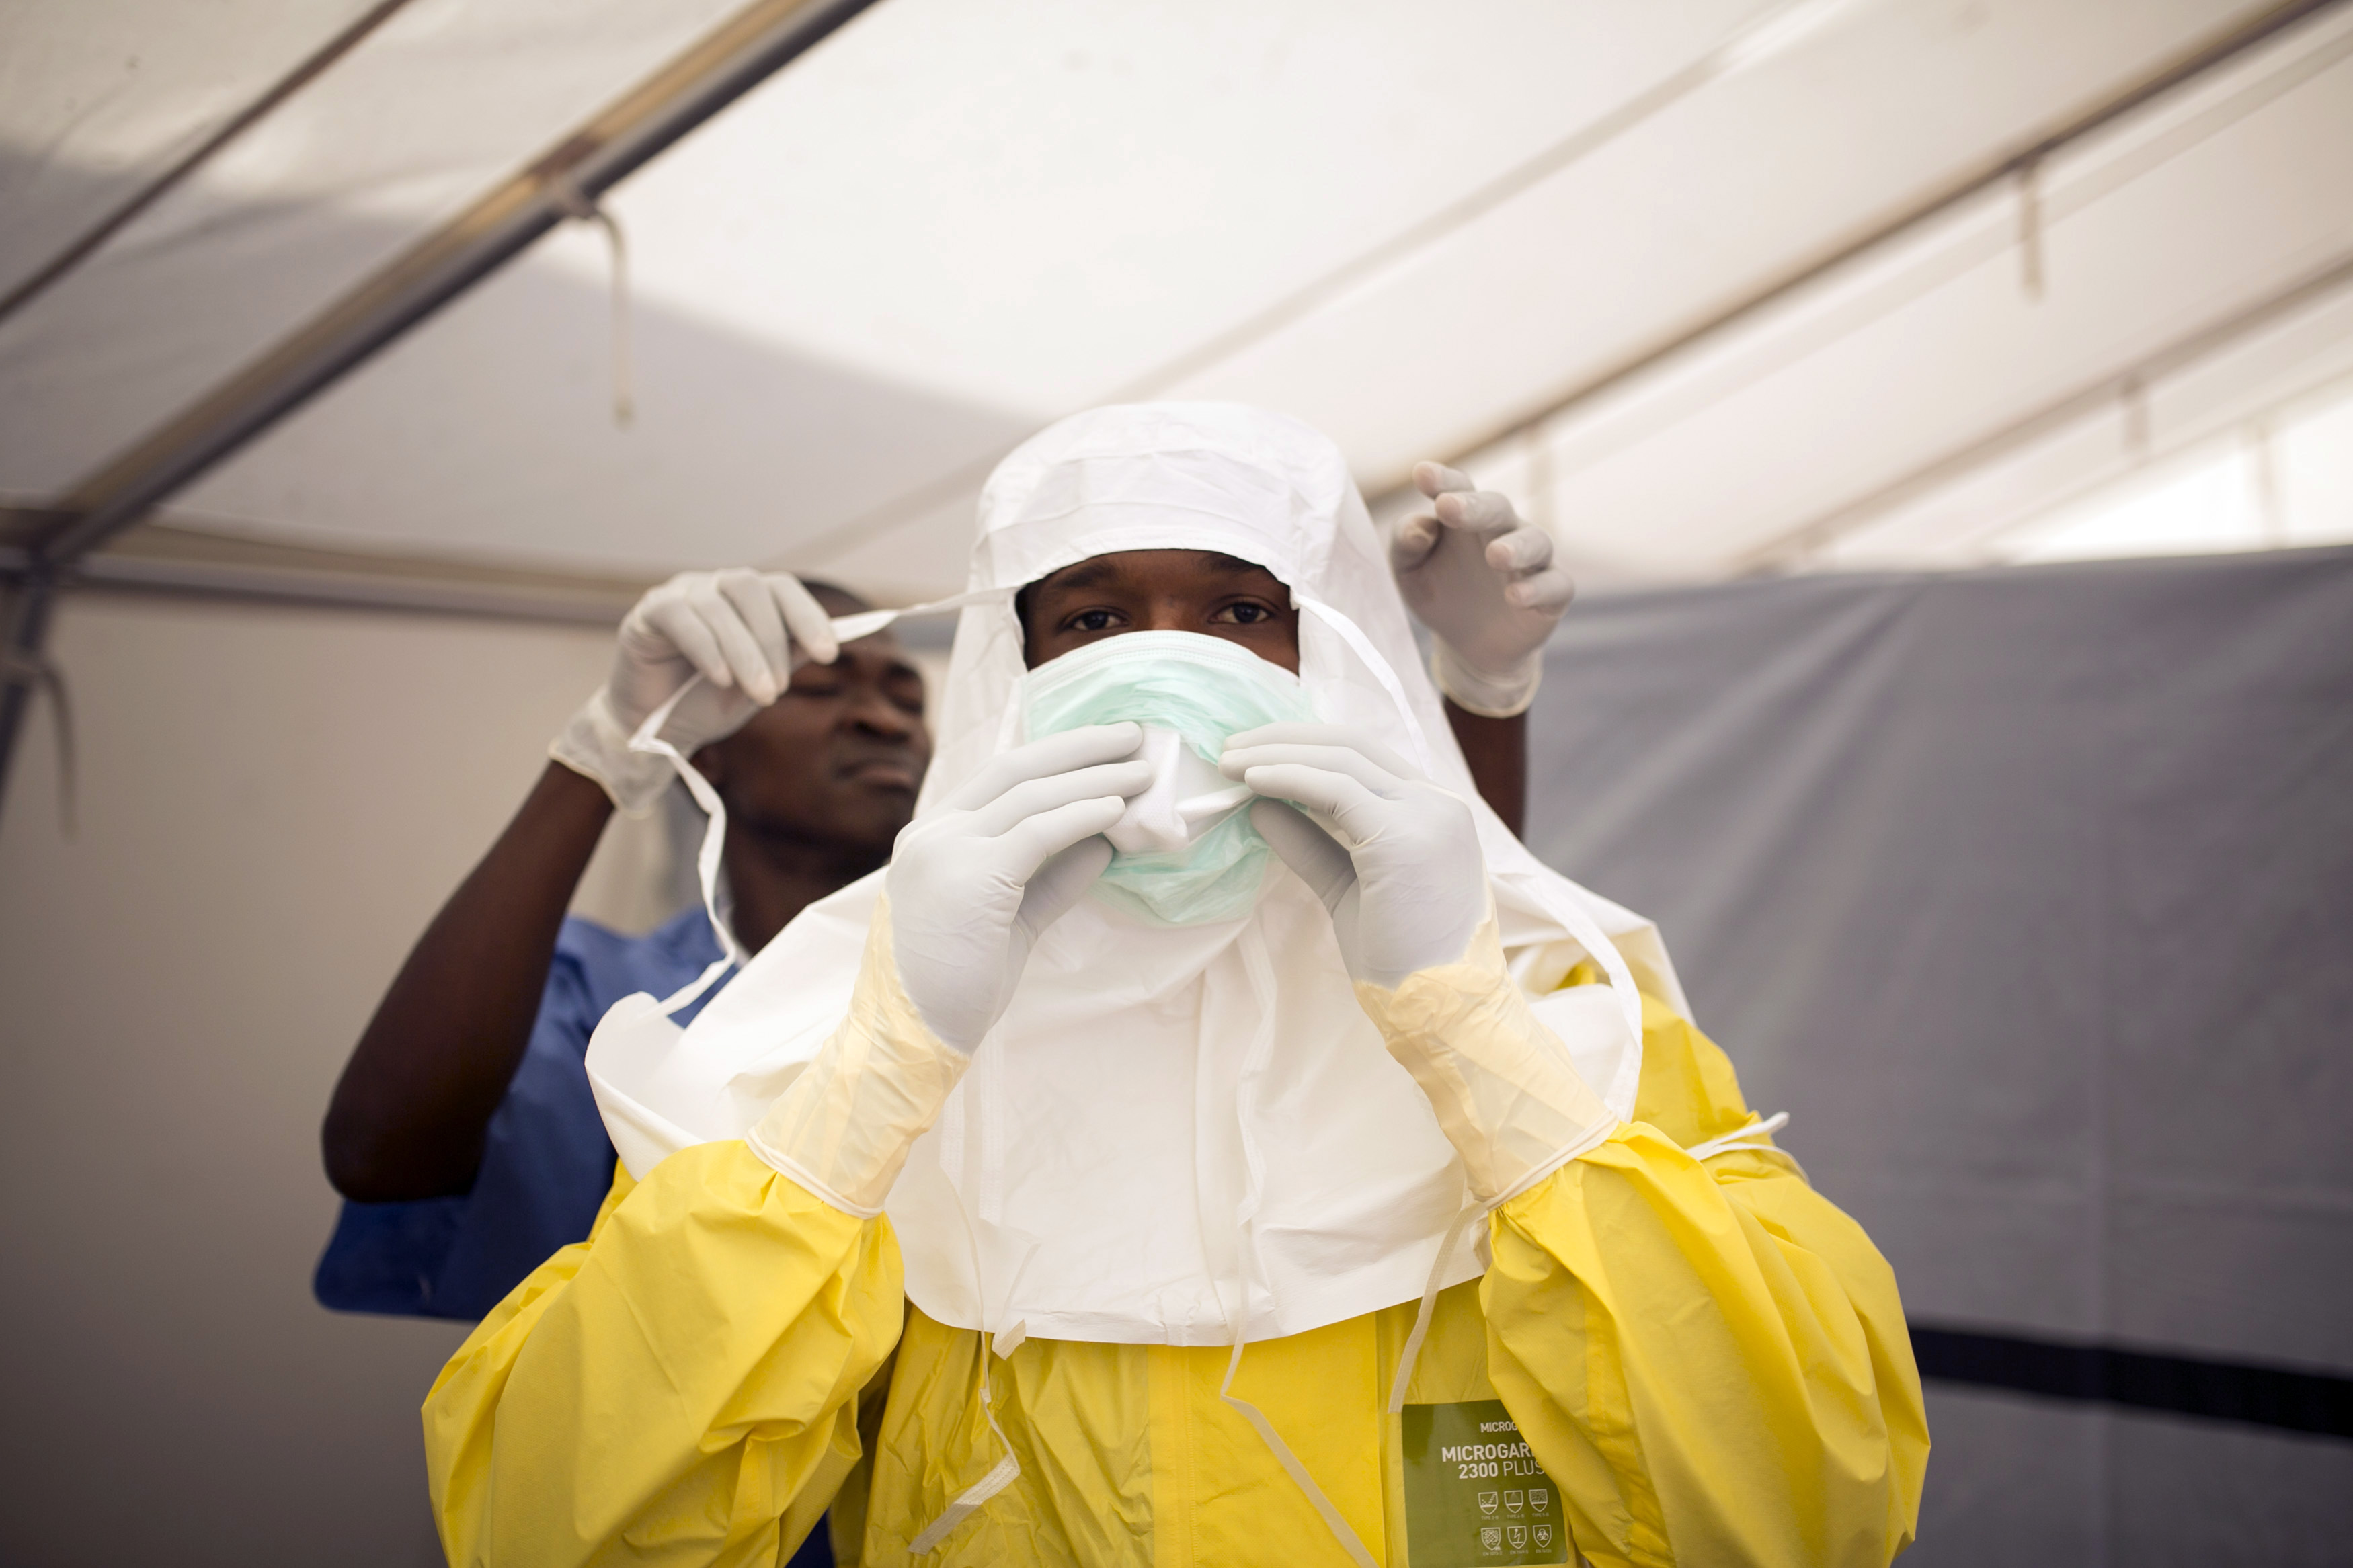 Health workers put on protective gear before entering a quarantine zone at a Red Cross facility in the town of Koidu, Kono district in Eastern Sierra Leone December 19, 2014.